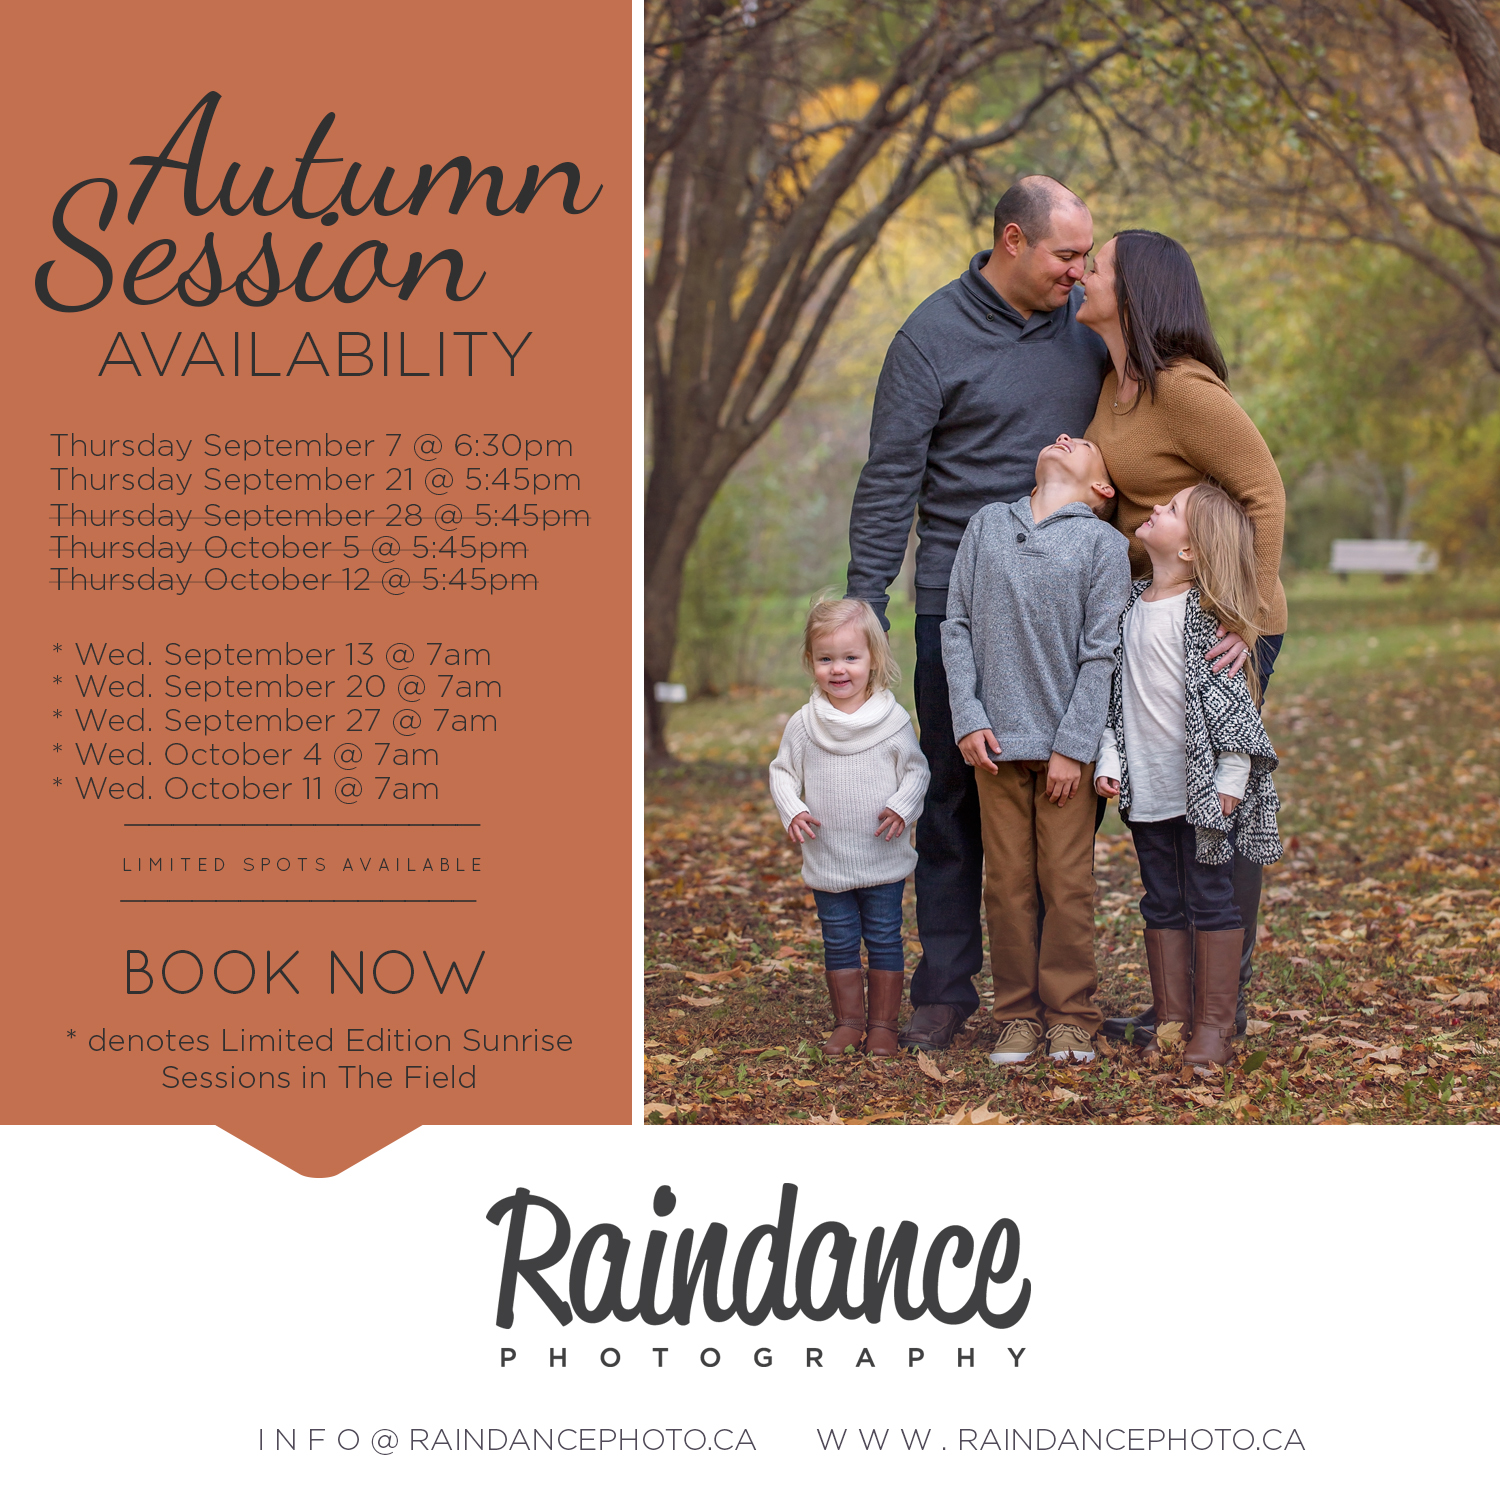 Fall Session Availability - 2017